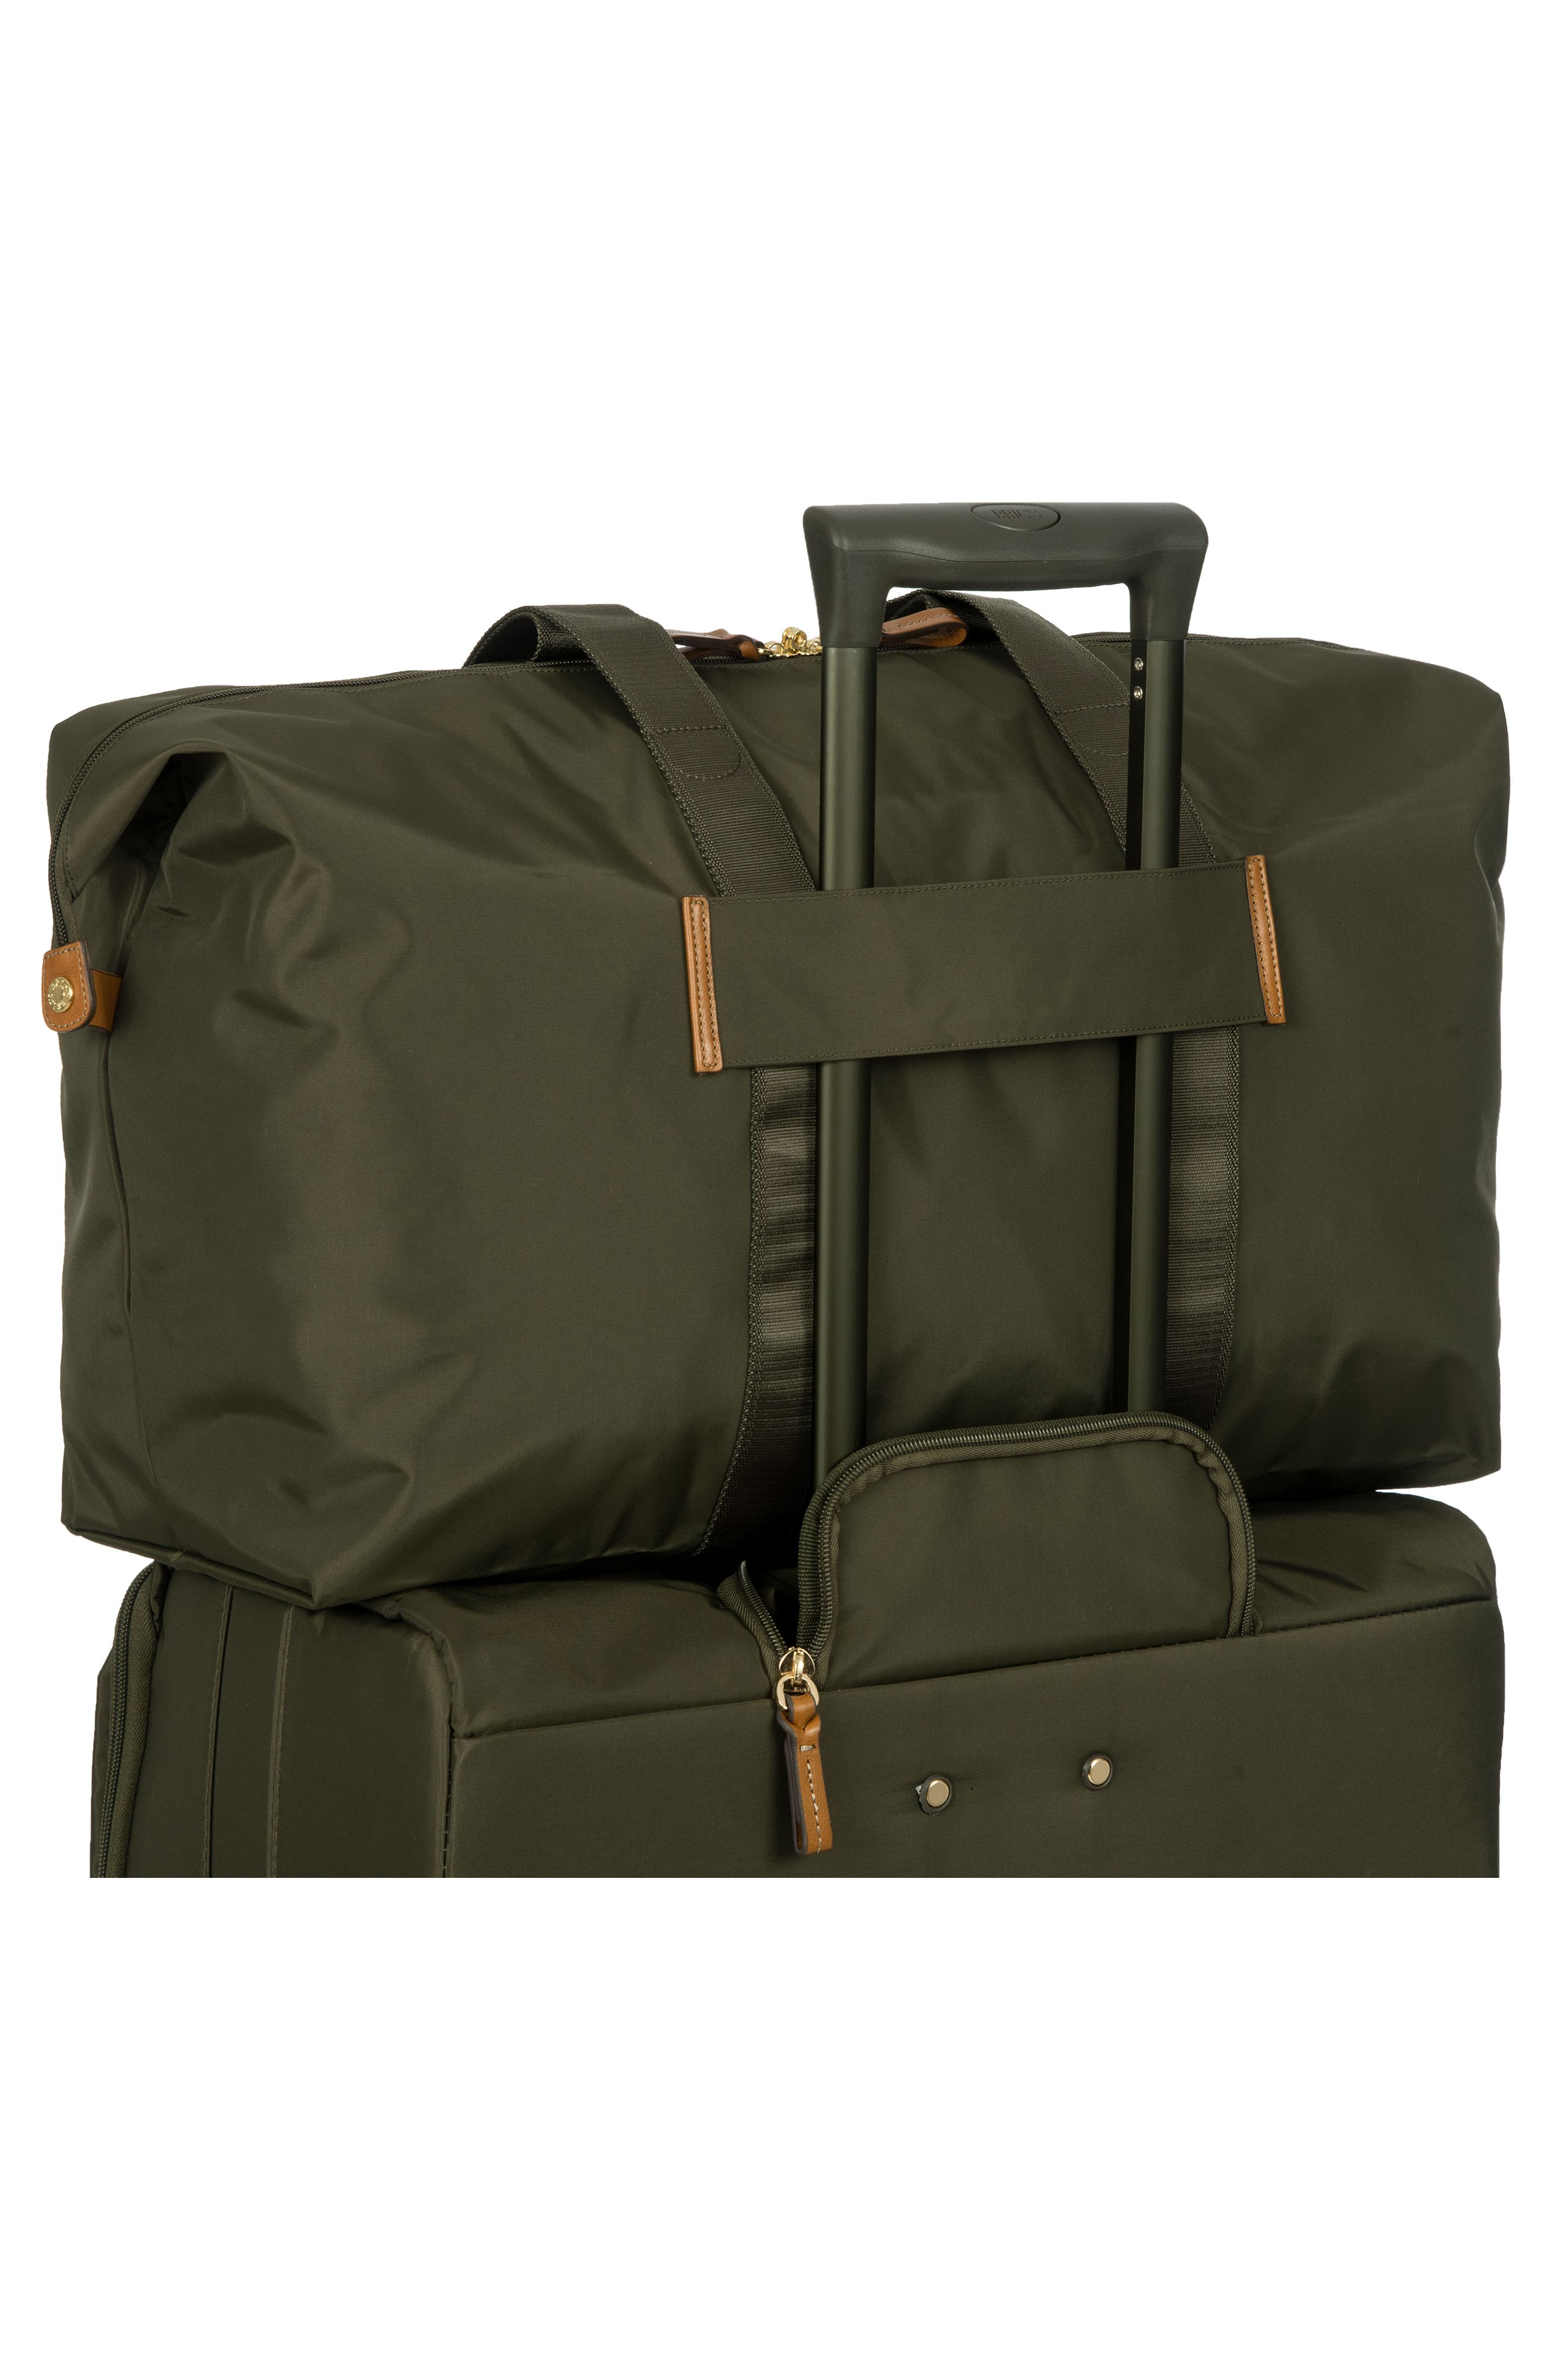 add2f9b1a97bf1 Men's Bric's Bags & Backpacks | Nordstrom